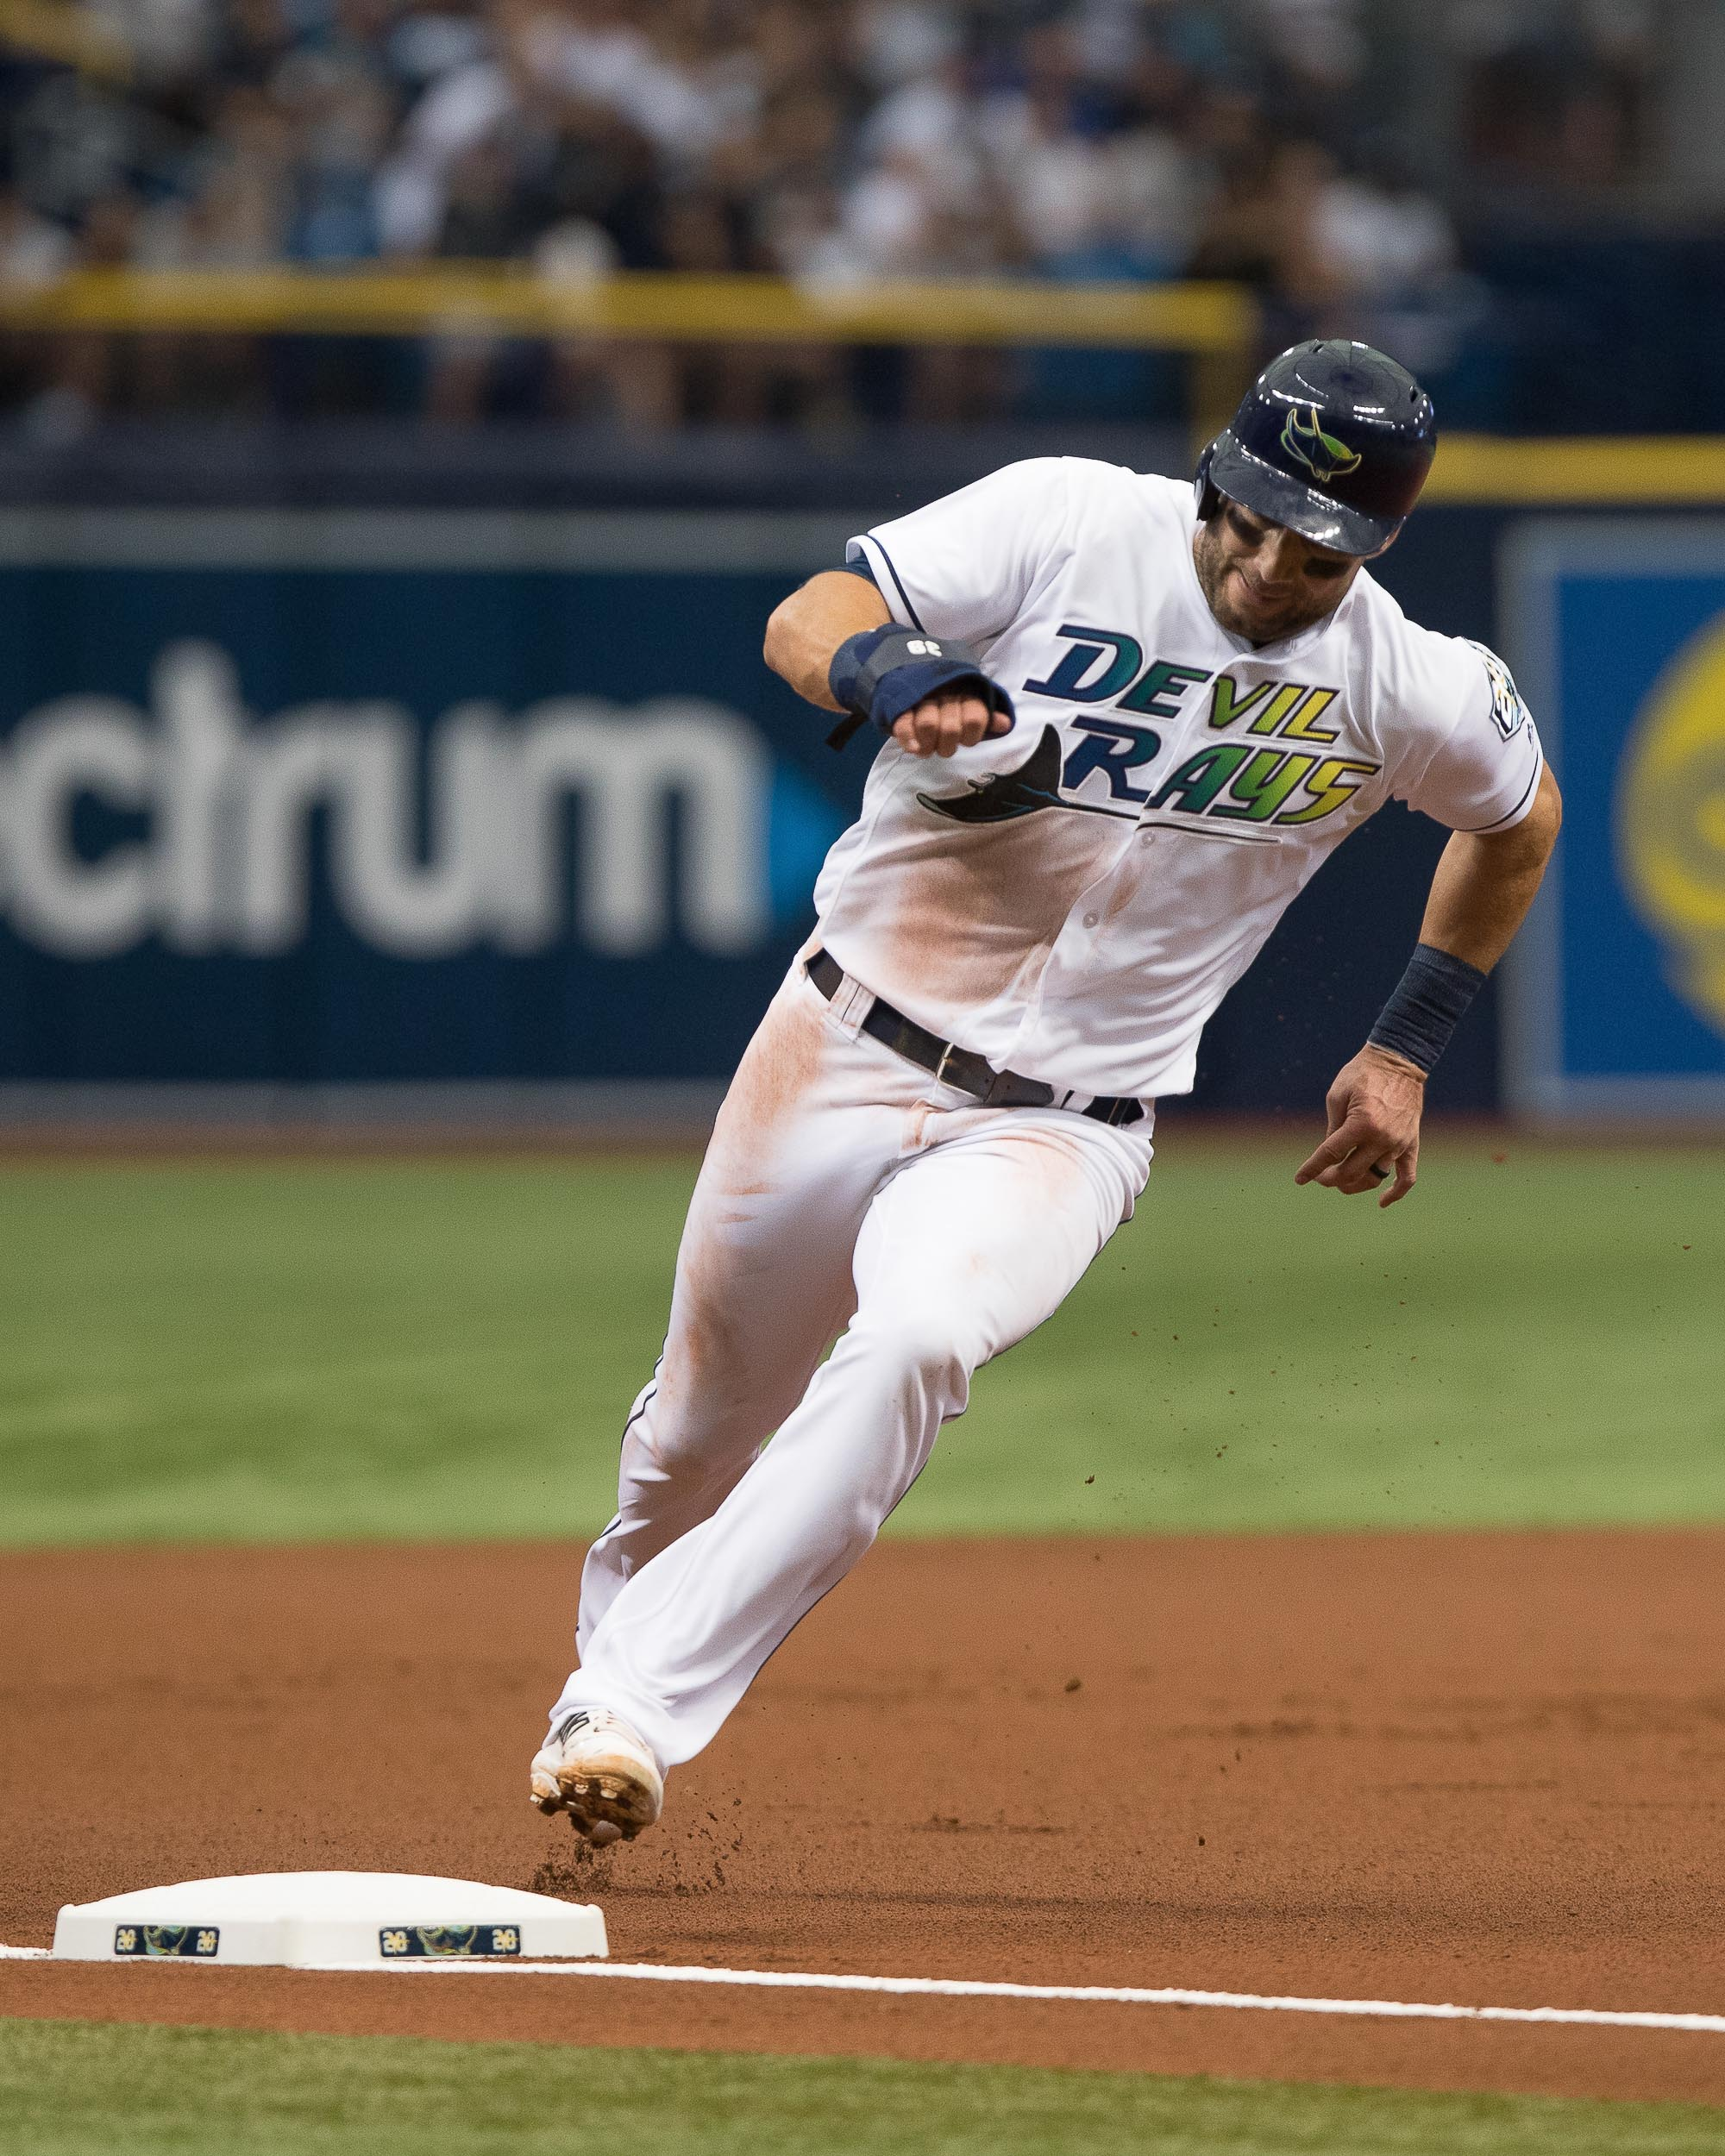 Kevin Kiermaier runs past 3rd on his way to home./STEVEN MUNICE